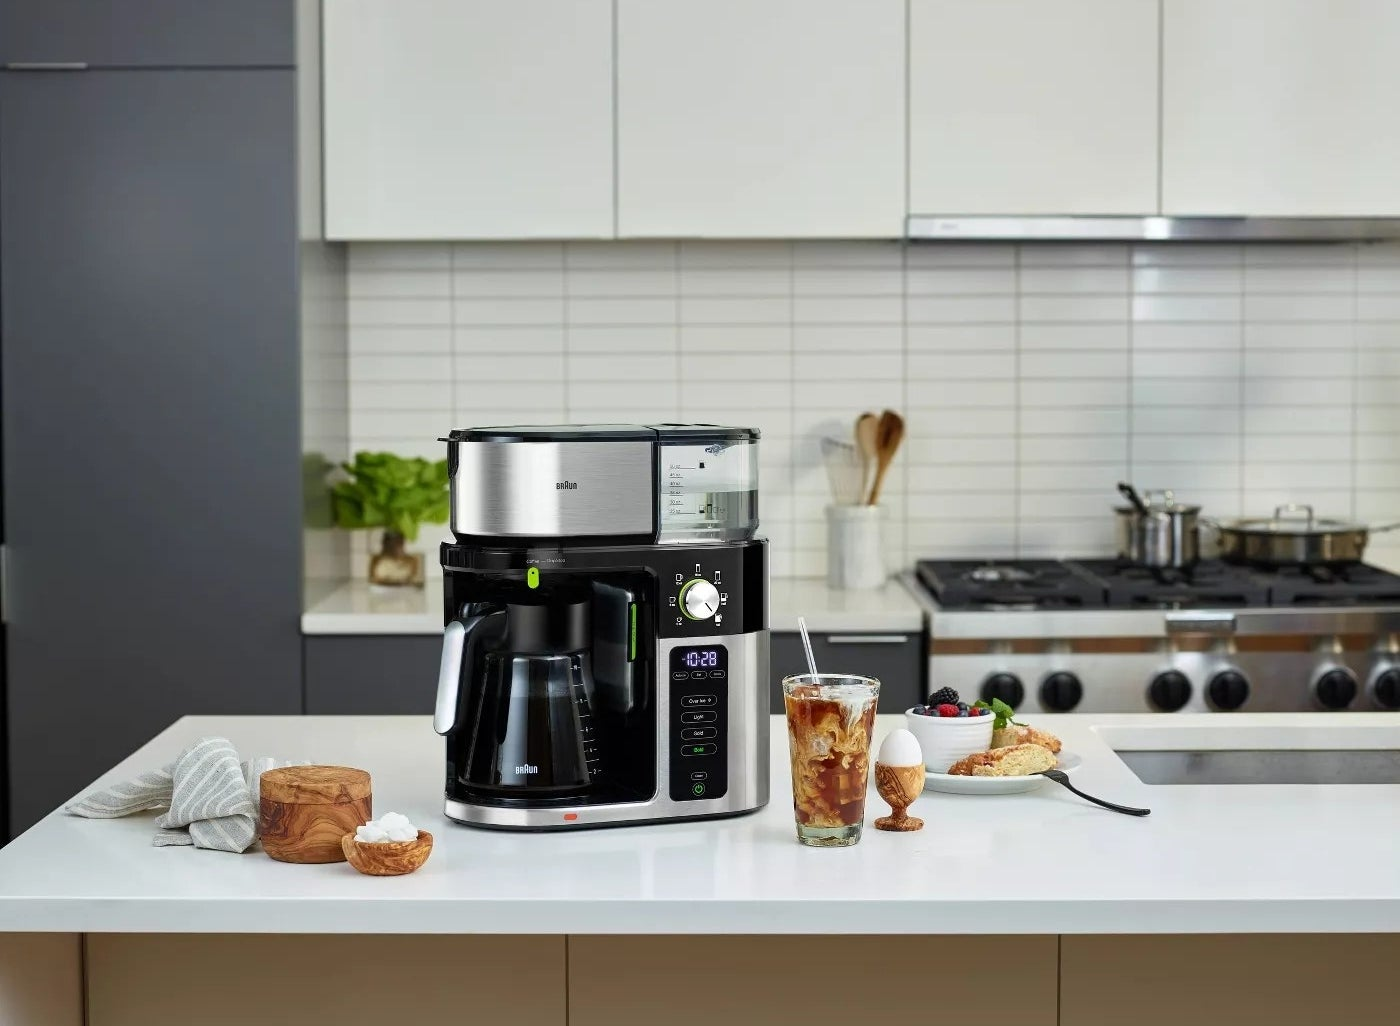 The silver and black Braun coffee maker